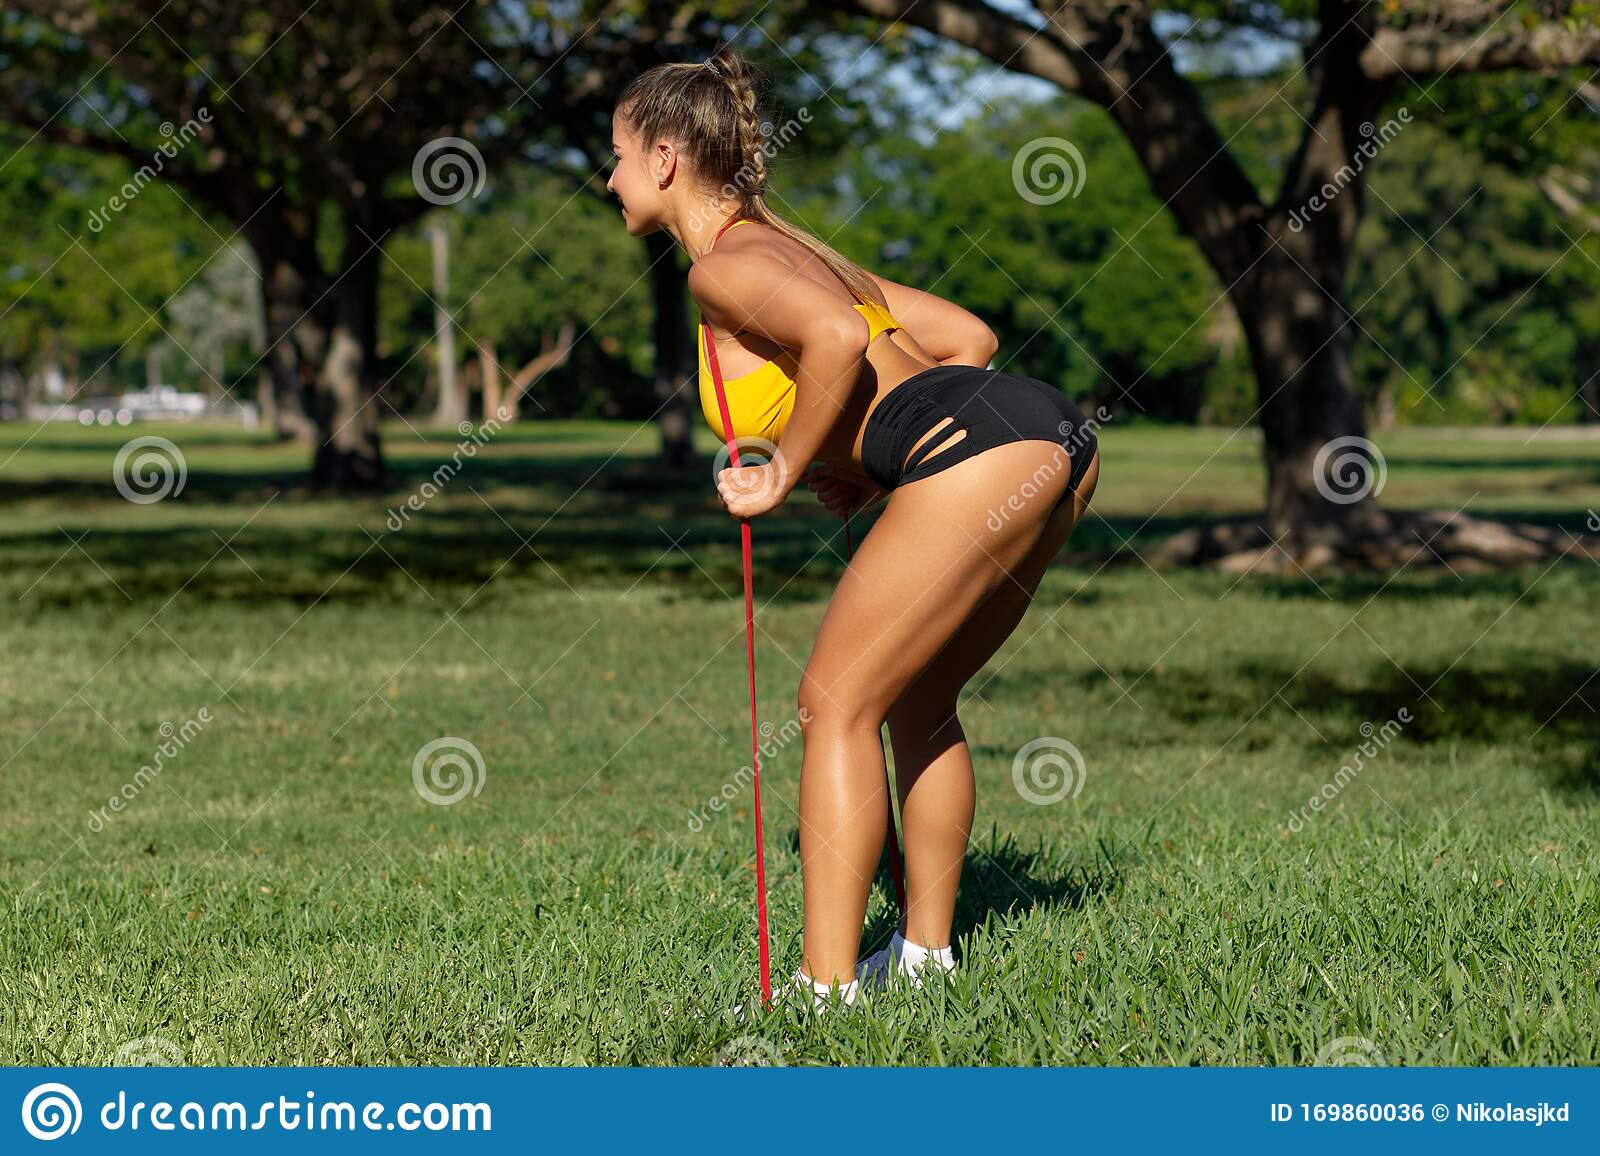 430 Fitness Girl Legs Butt Photos Free Royalty Free Stock Photos From Dreamstime Be sure to let us know if you'd like to see more by ashton! https www dreamstime com athletic woman doing exercise glutes legs outdoors fitness girl workout resistance band park image169860036